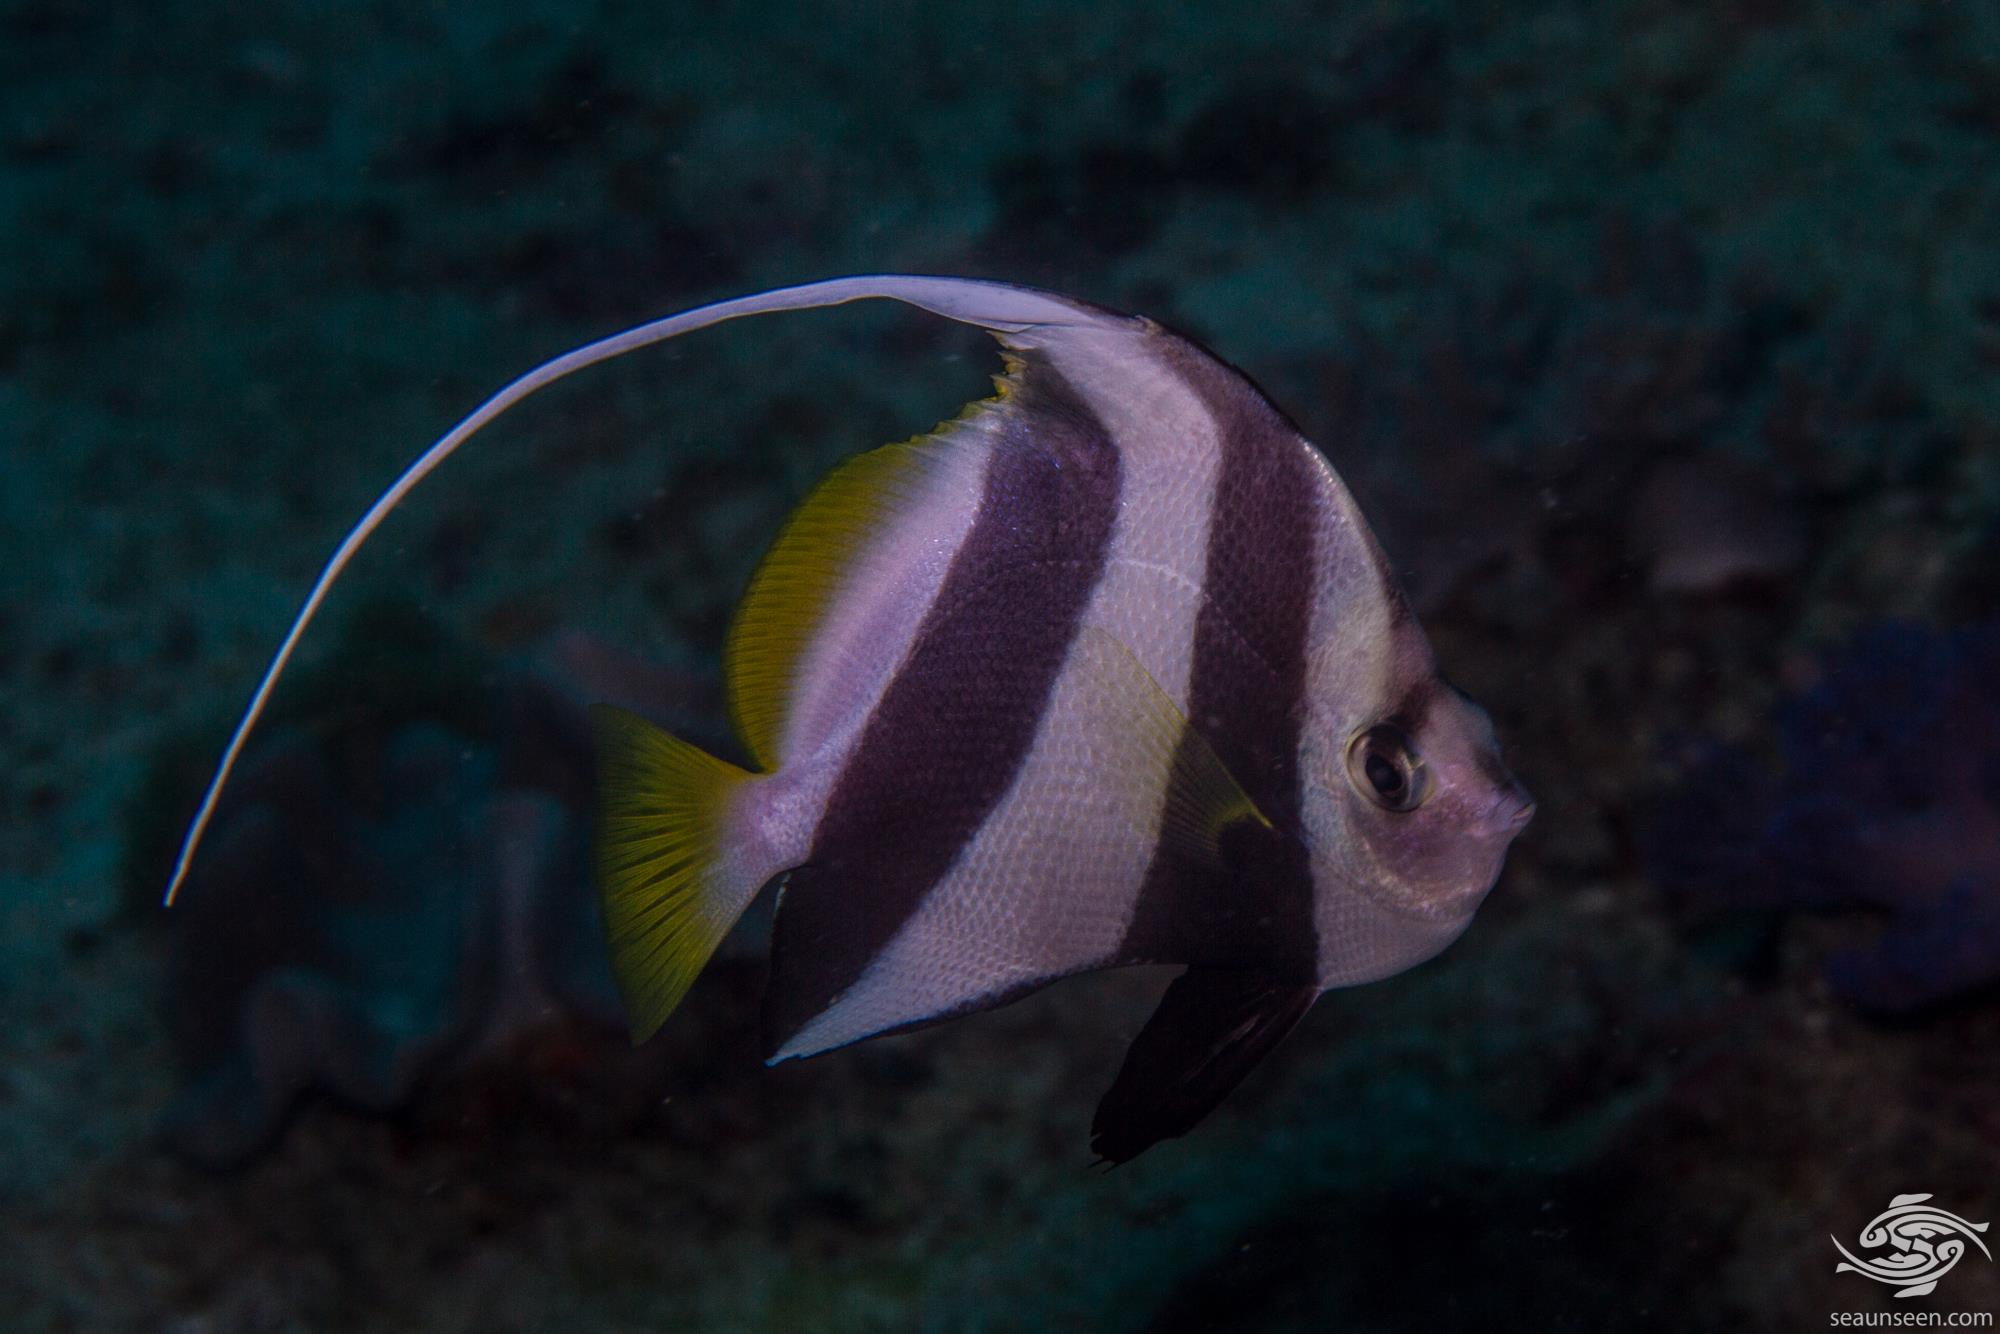 schooling bannerfish (Heniochus diphreutes), also known as the false moorish idol